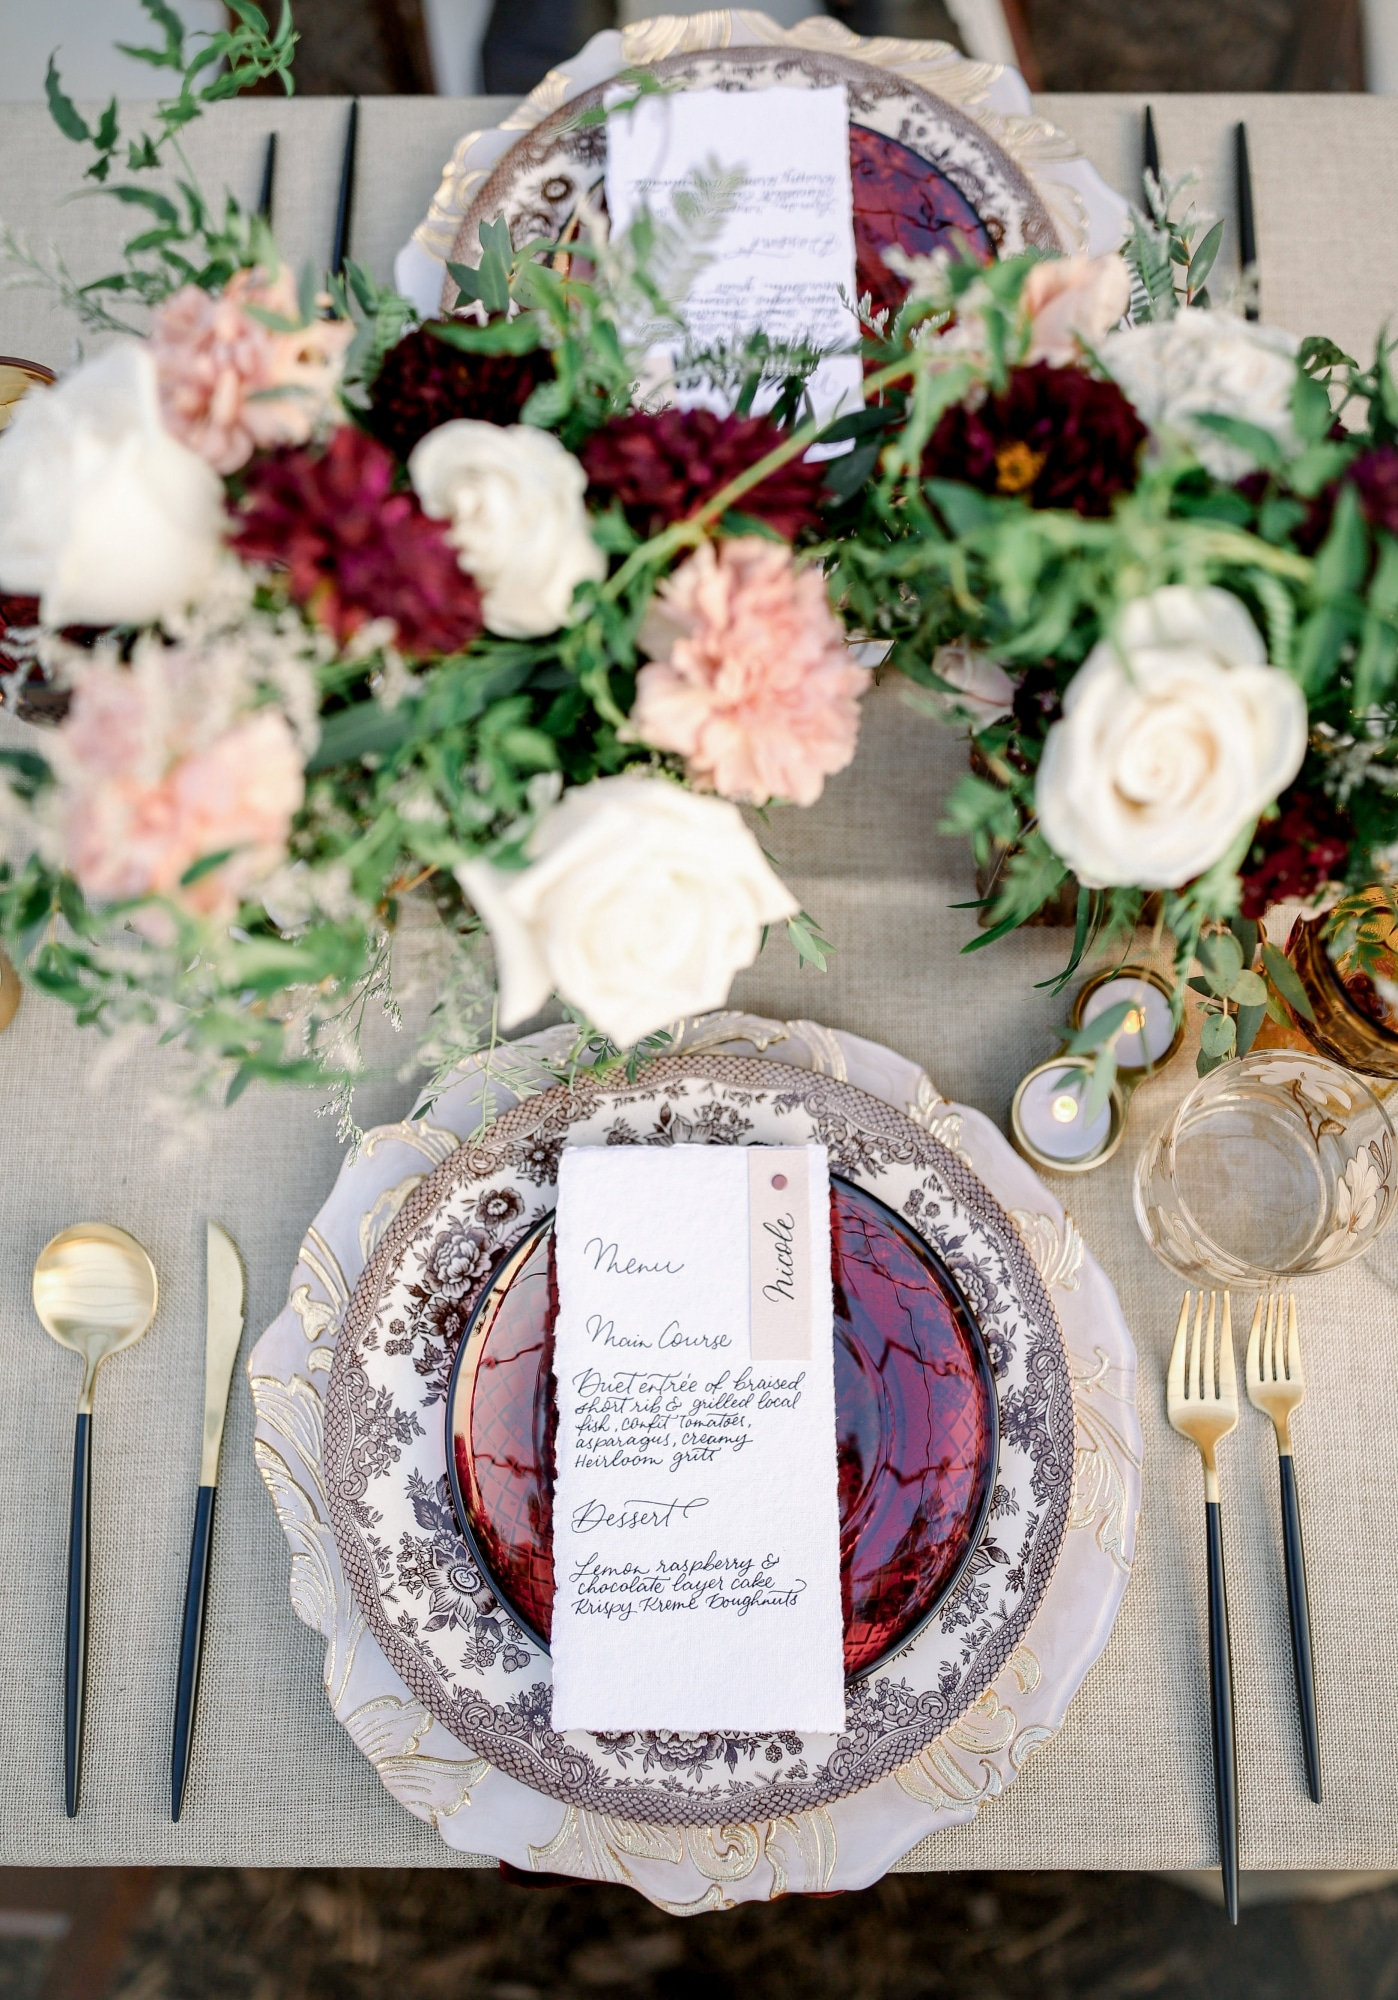 roses of all colors between two table settings with red and menus